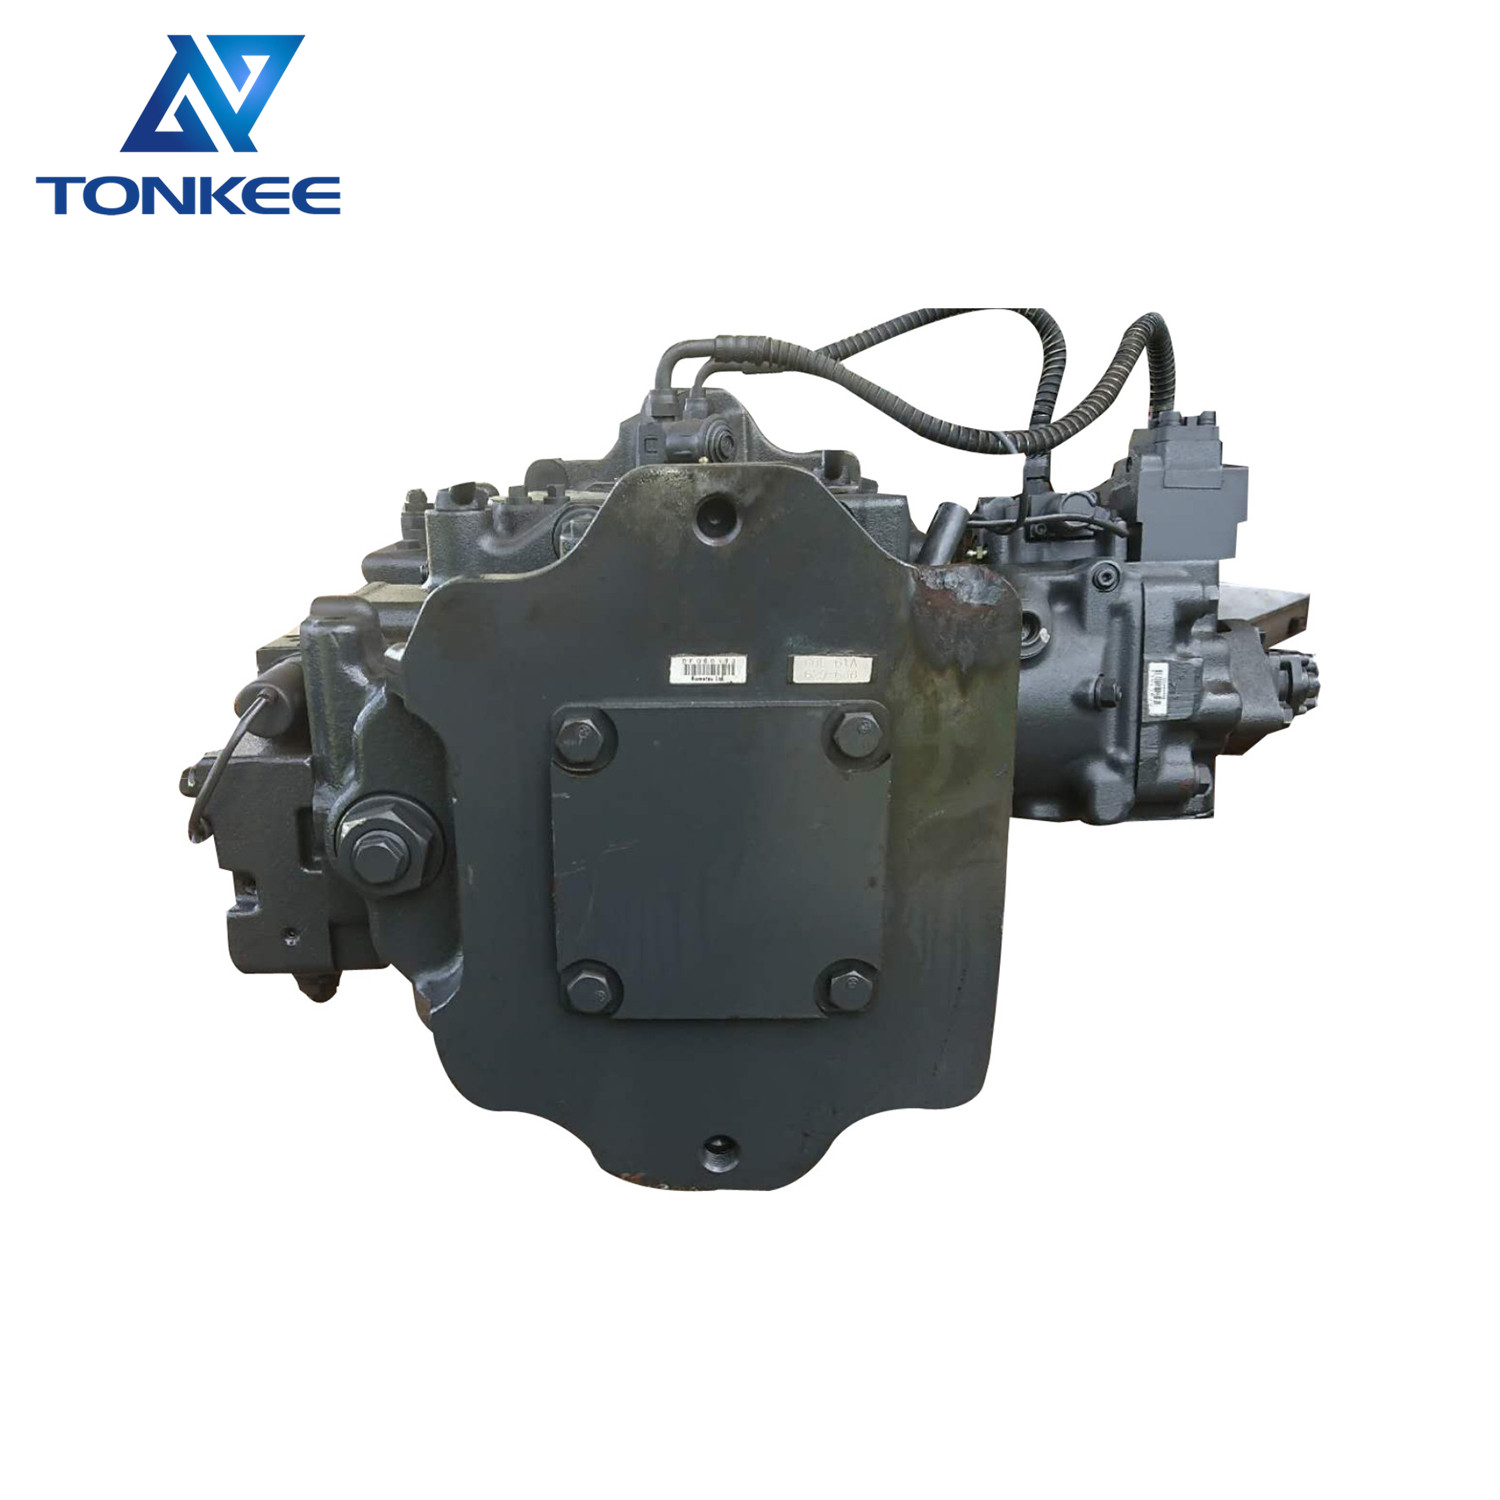 708-2K-00110 708-2K-01110 708-2K-00131 708-1W-00910 708-1W-00900 hydraulic piston pump excavator PC800-8 PC850-8 PC800SE hydraulic main pump